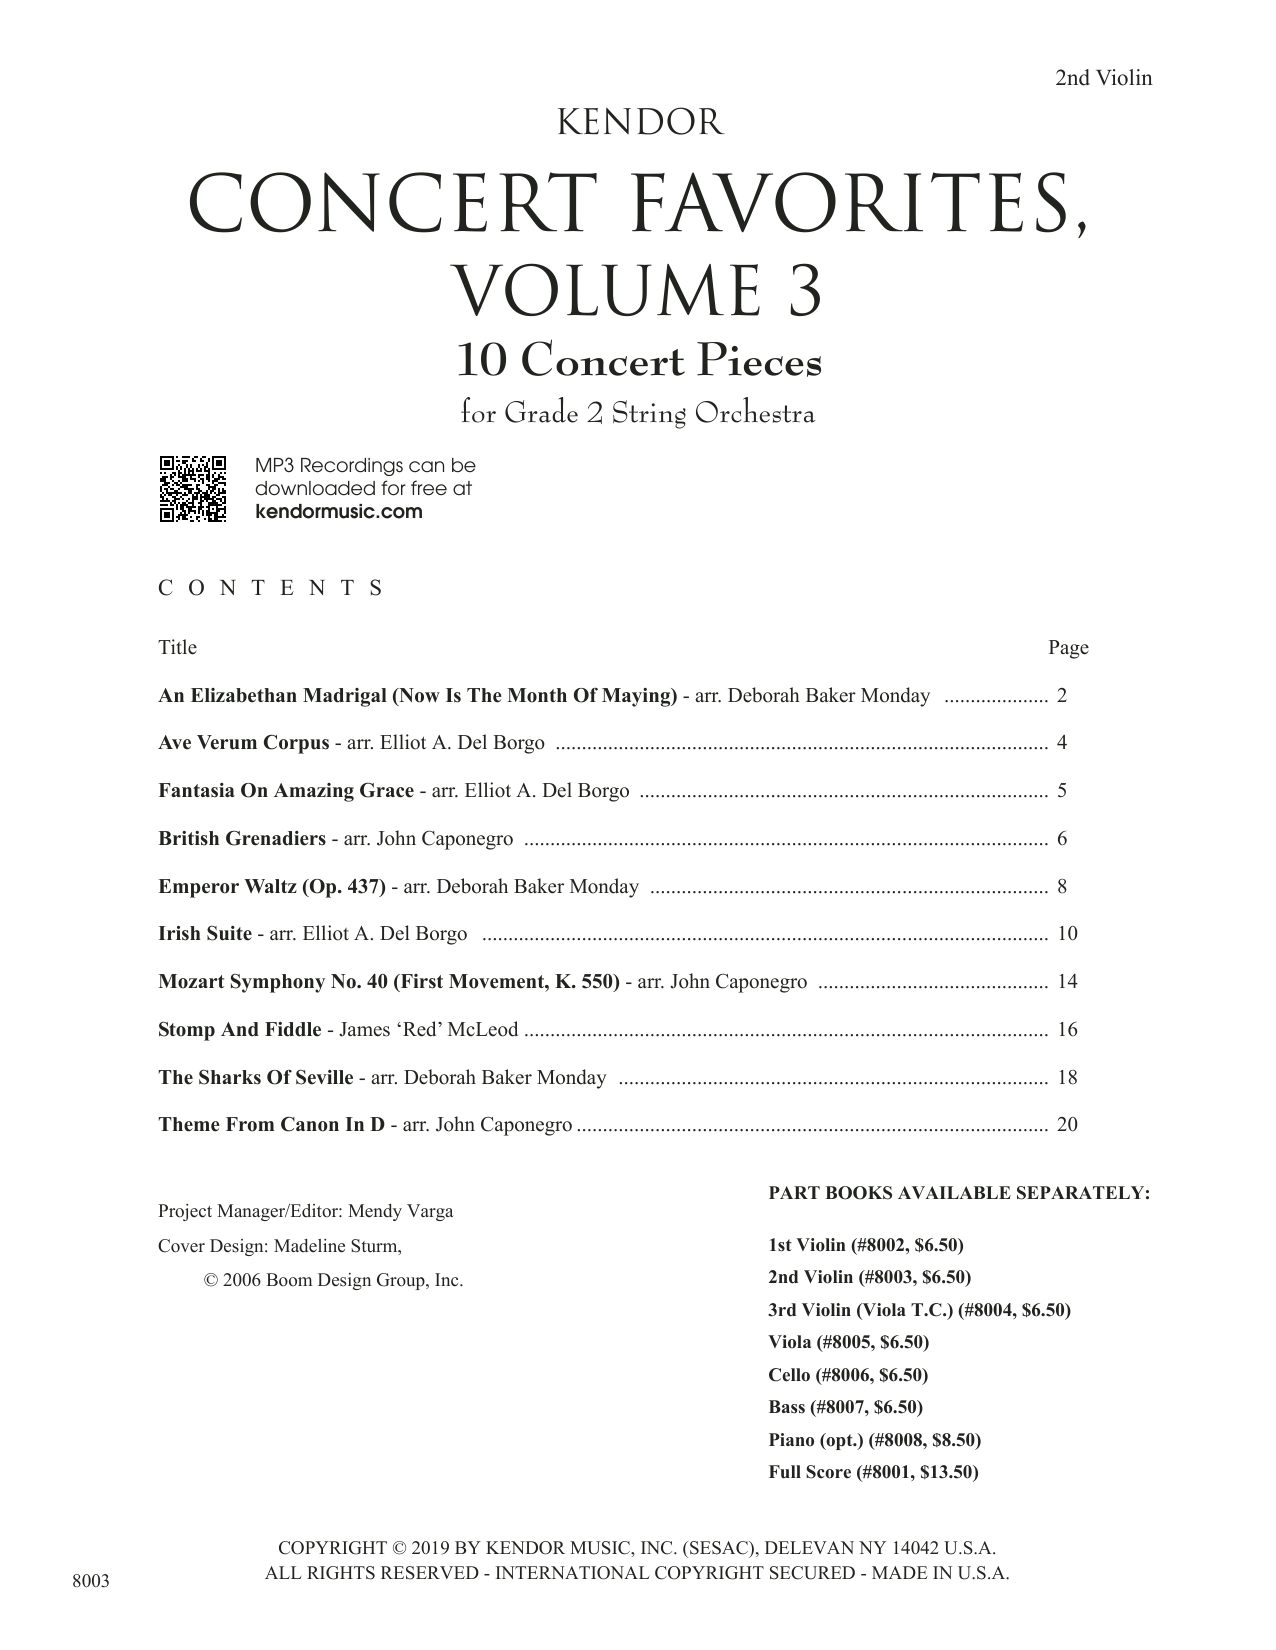 Kendor Concert Favorites, Volume 3 - 2nd Violin Sheet Music